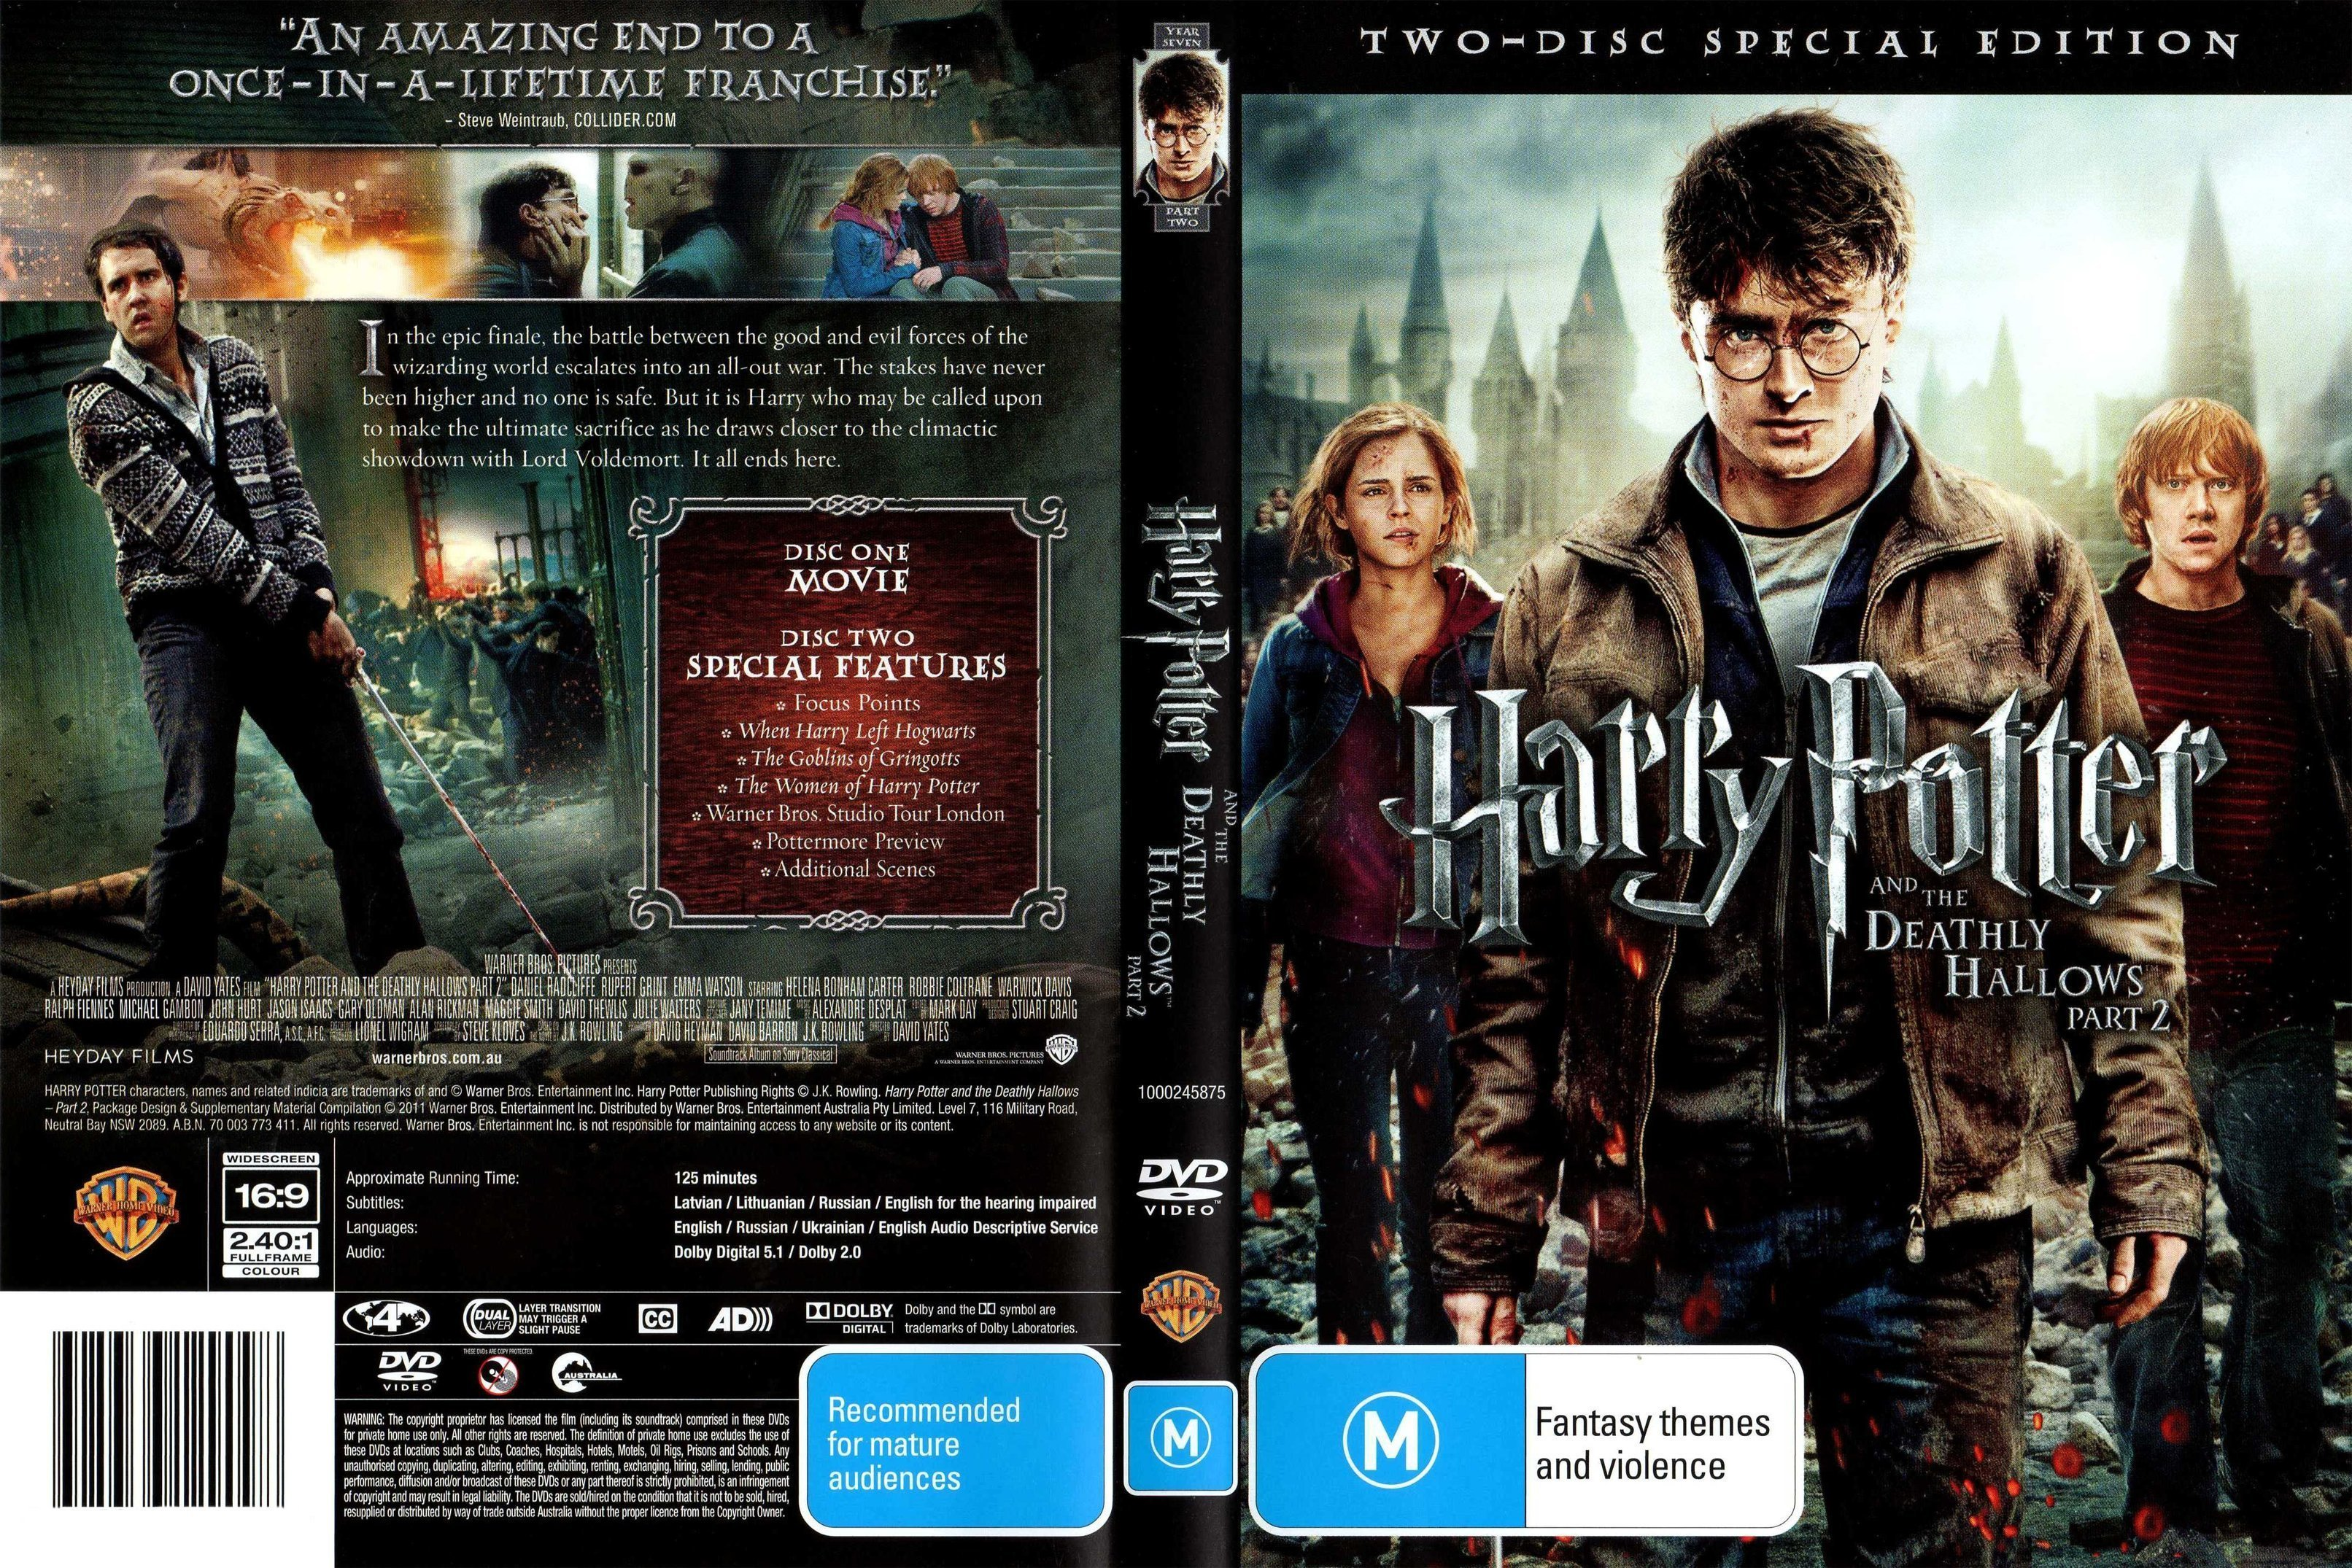 Harry Potter And The Deathly Hallows Part 2 2011 Ws Ce R4 Dvd Covers And Labels